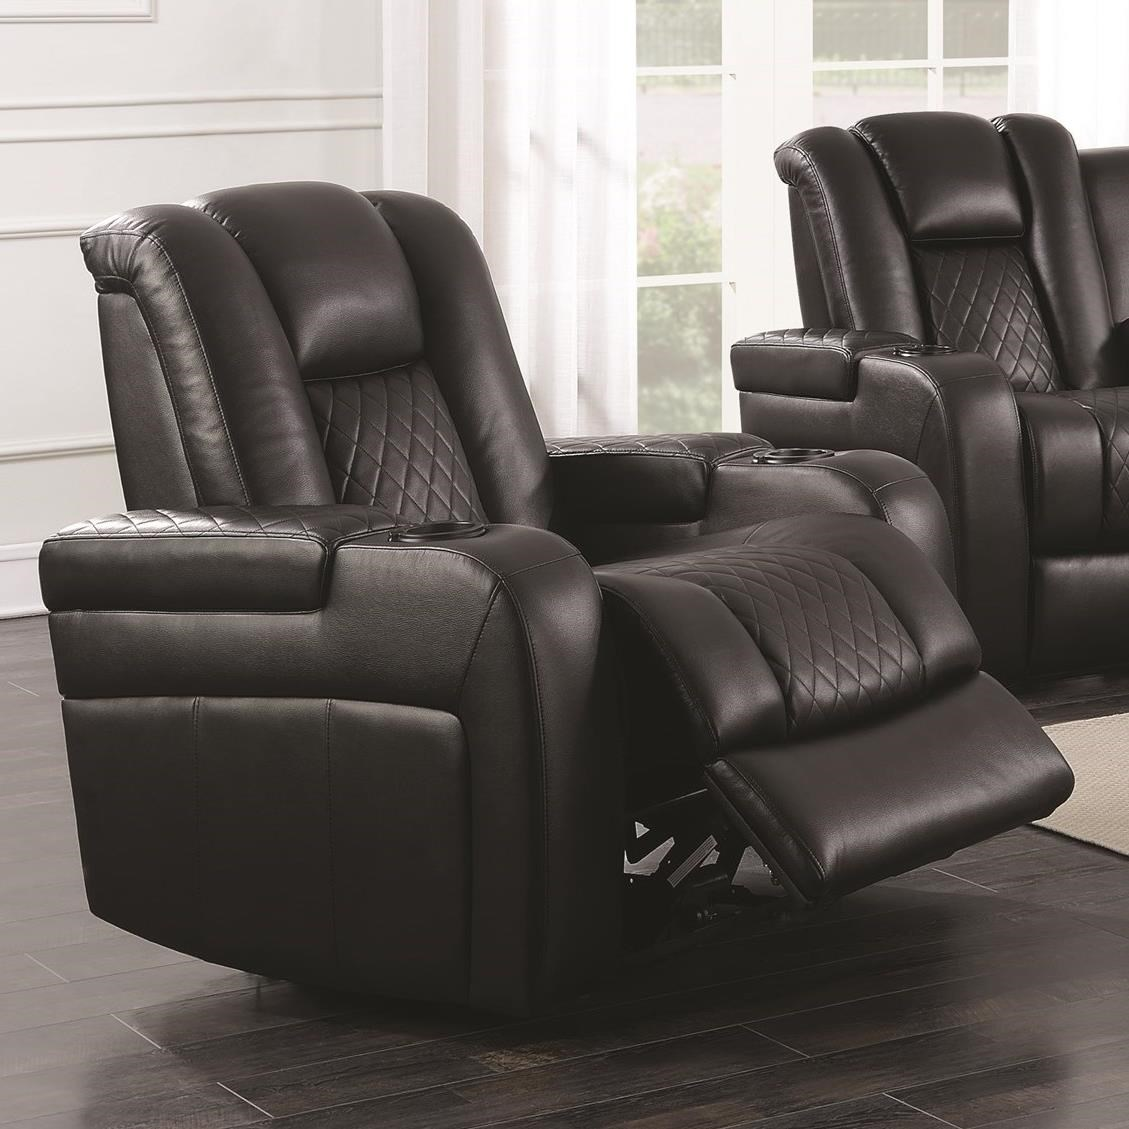 Delangelo Casual Power Recliner With Cup Holders Storage